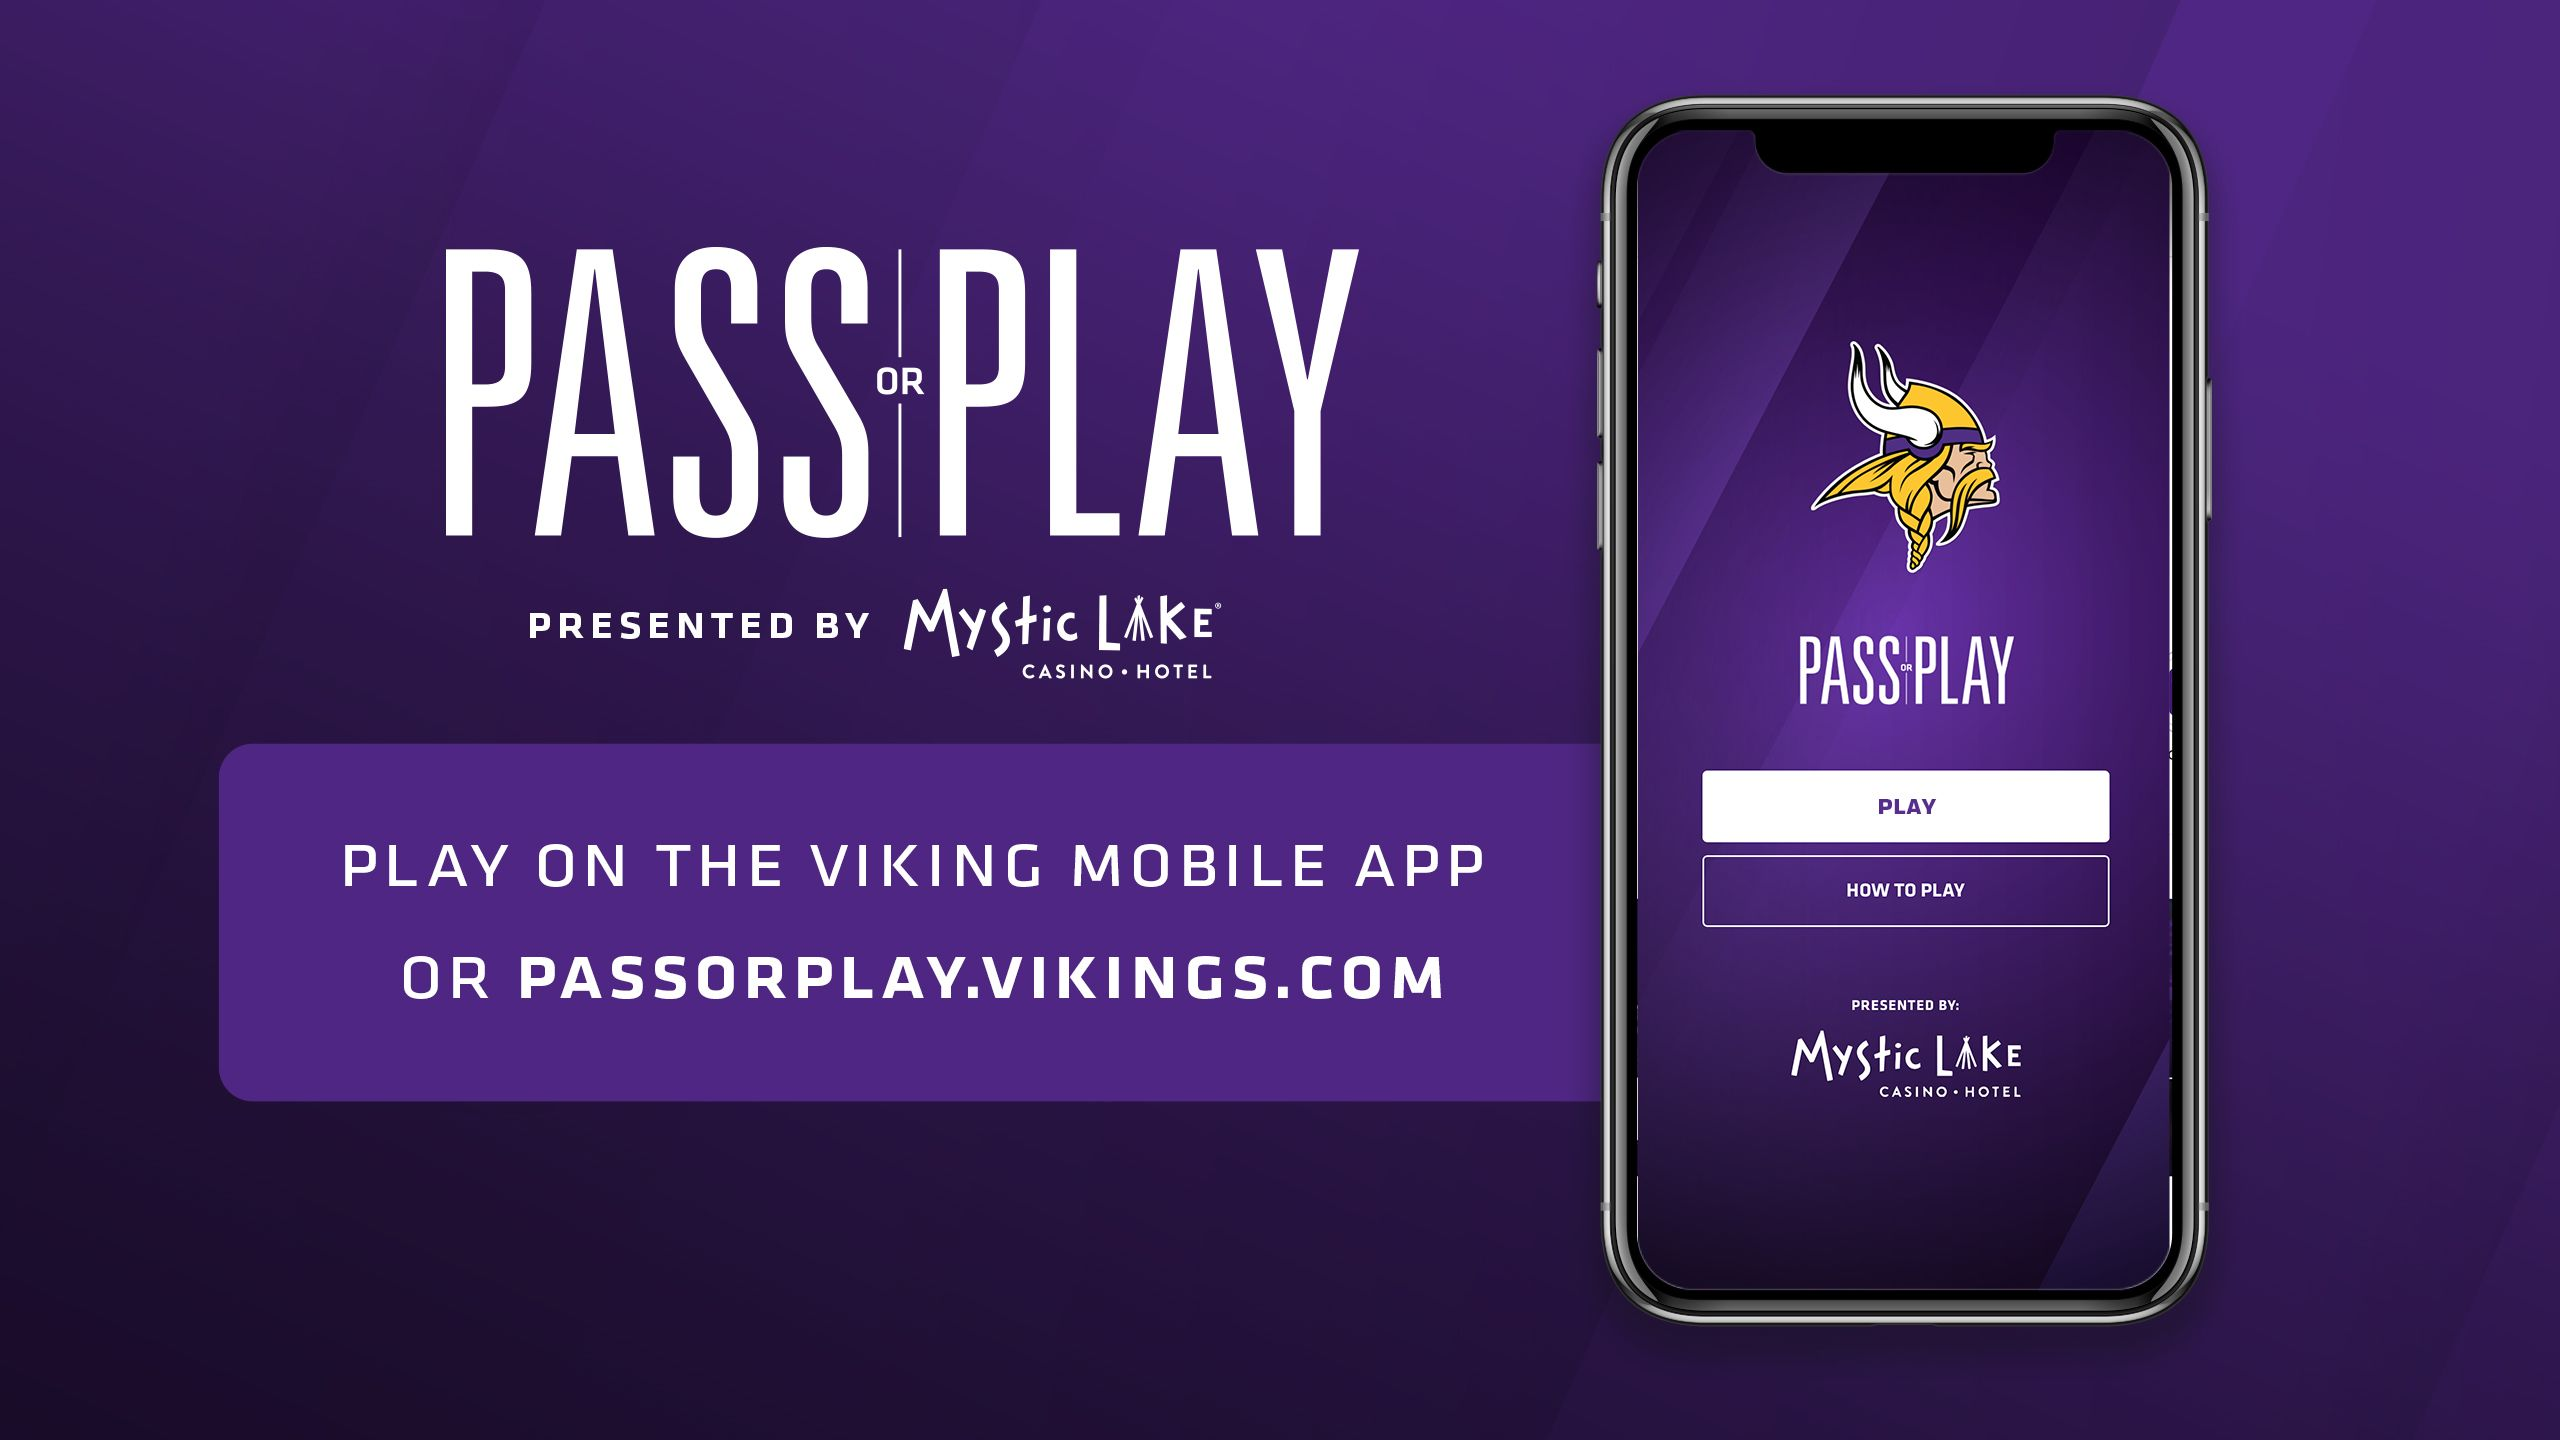 Check Out 'Pass or Play' Online or Via The Vikings App